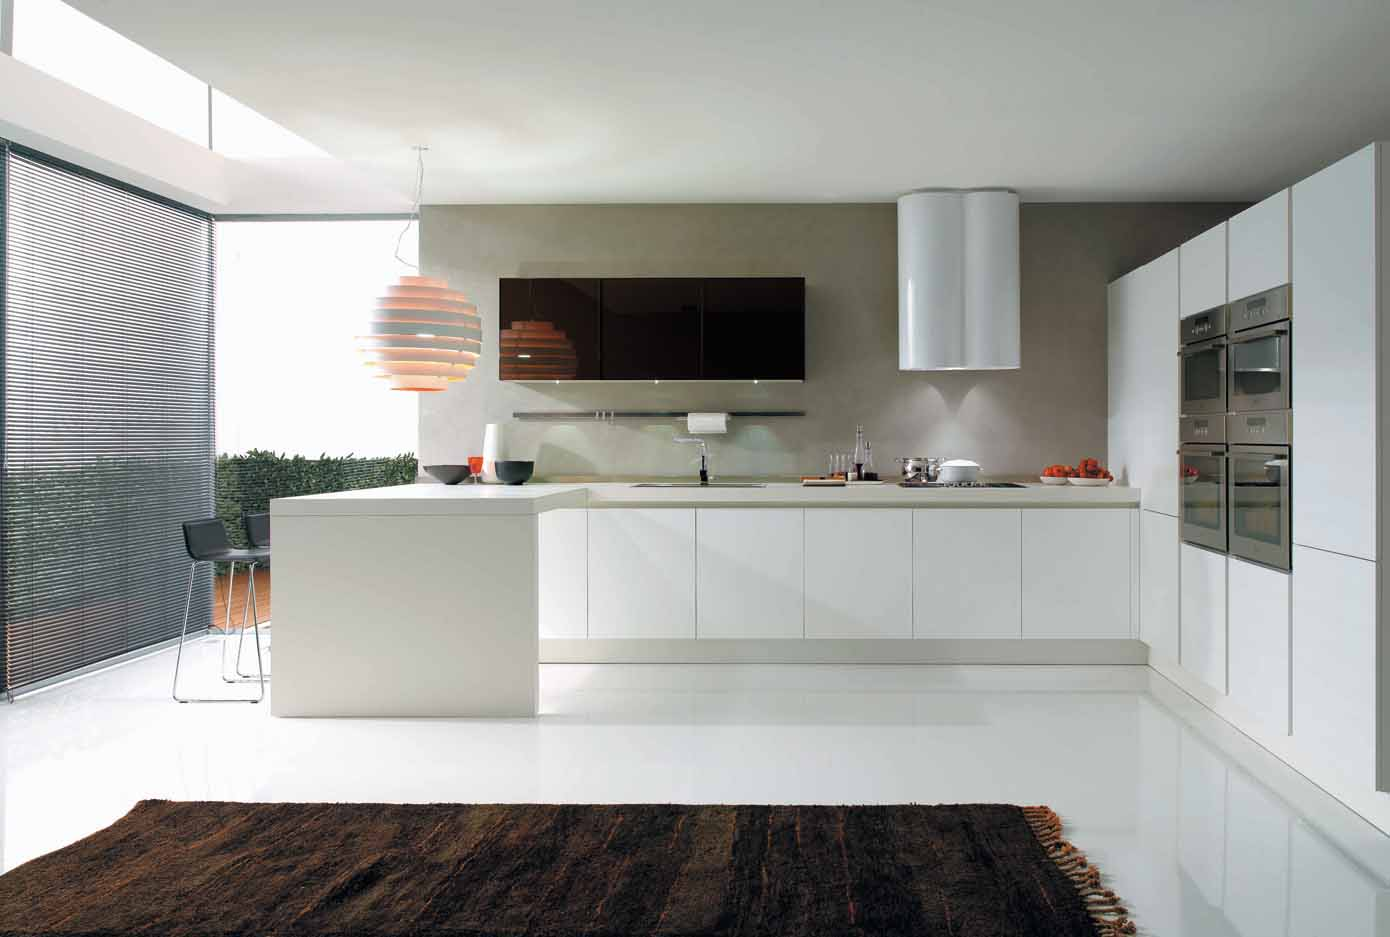 Filo Vanity Kitchen Design photo - 1